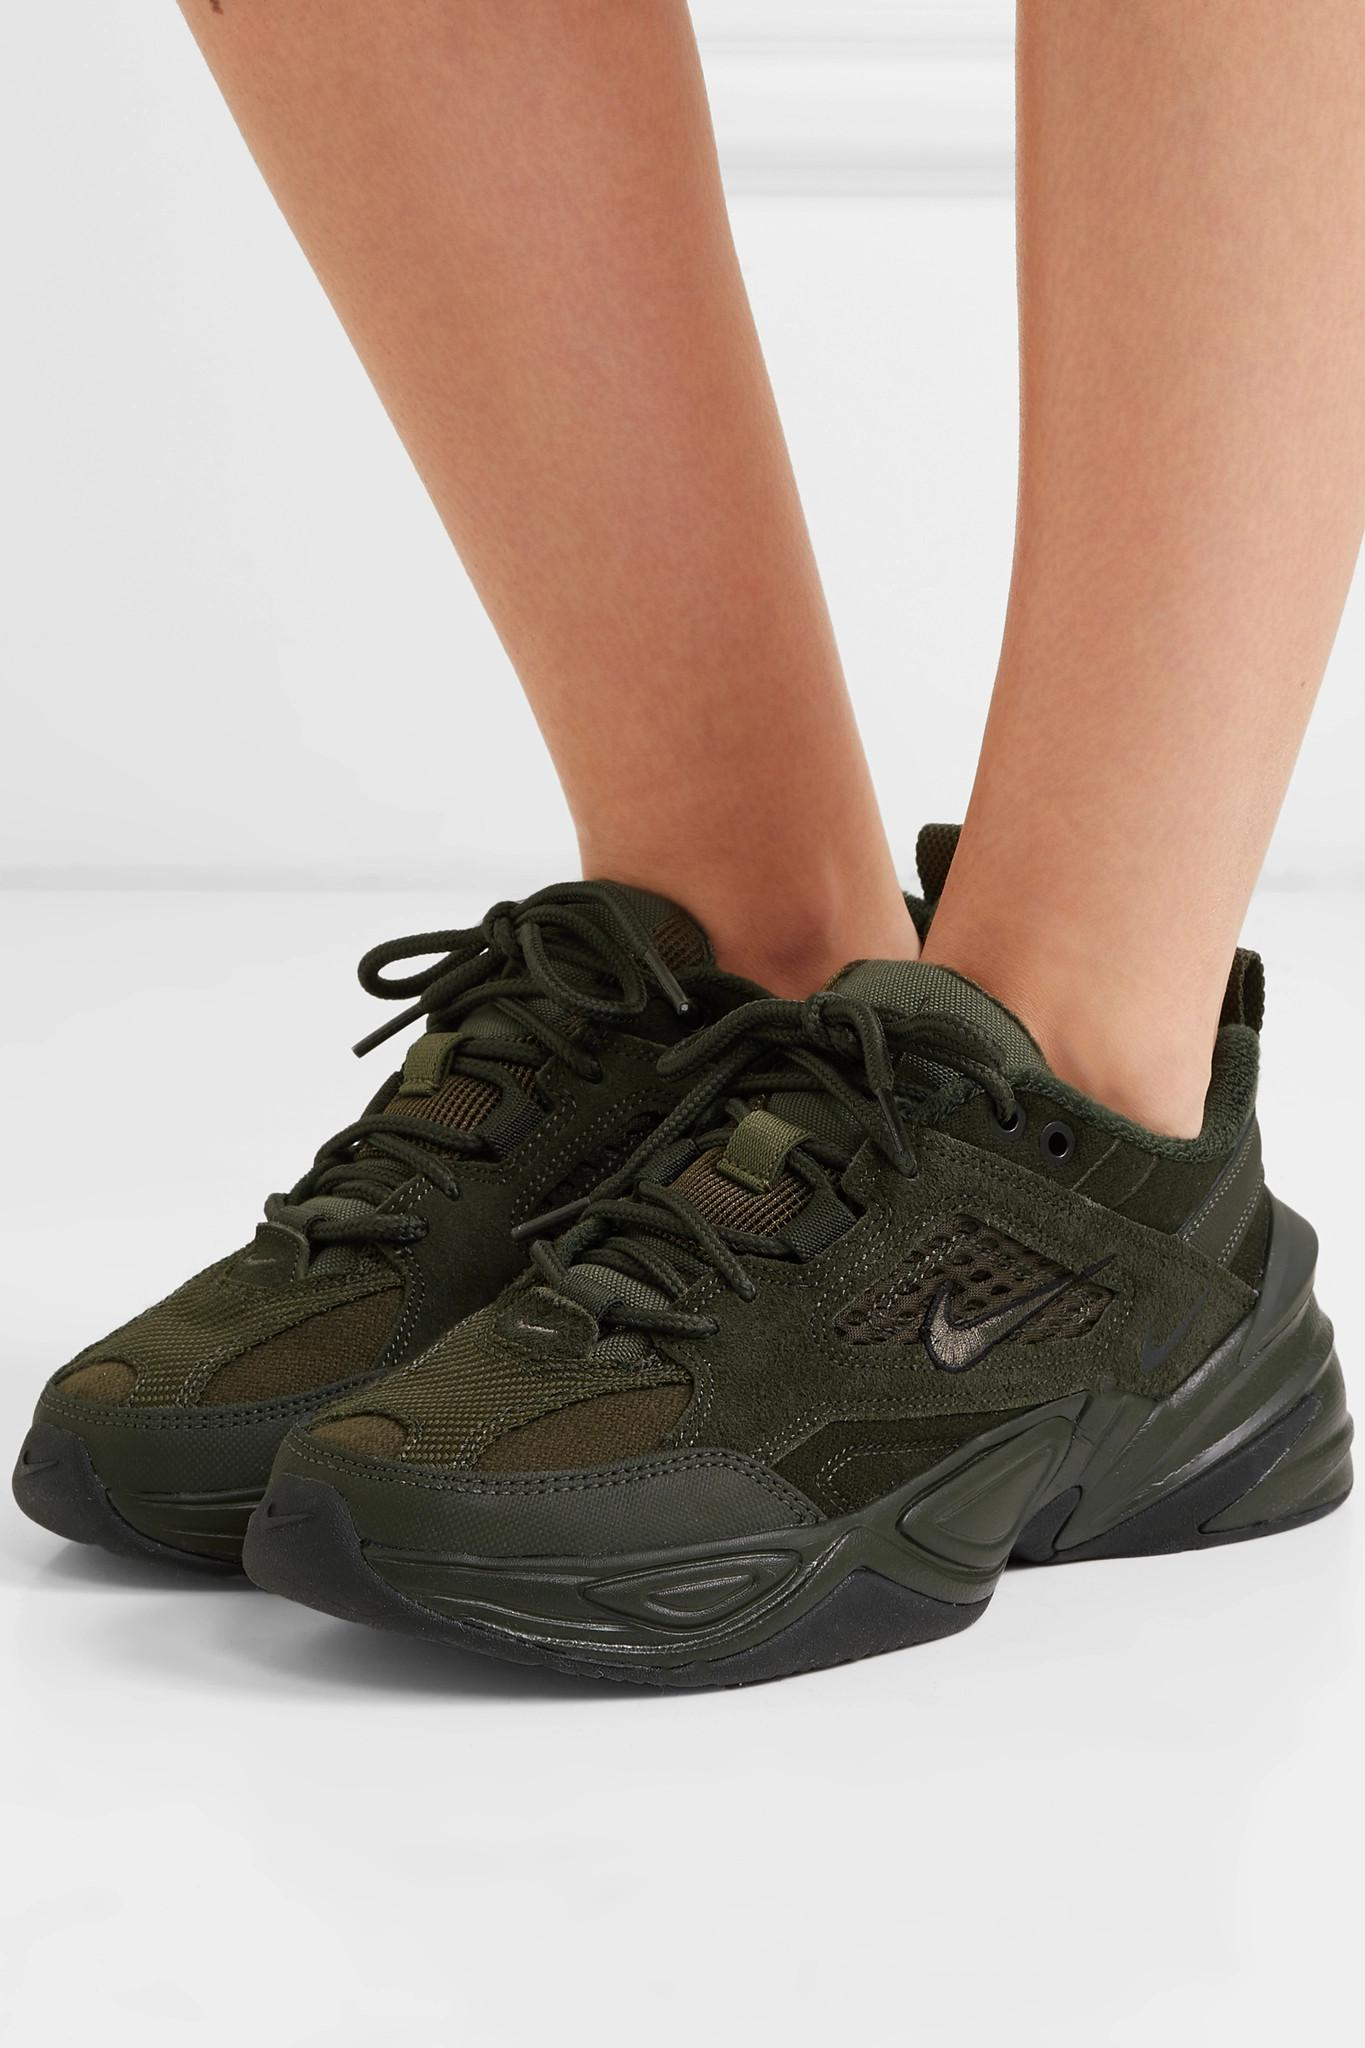 3c1e2713ae Nike M2k Tekno Suede And Mesh Sneakers in Green - Lyst